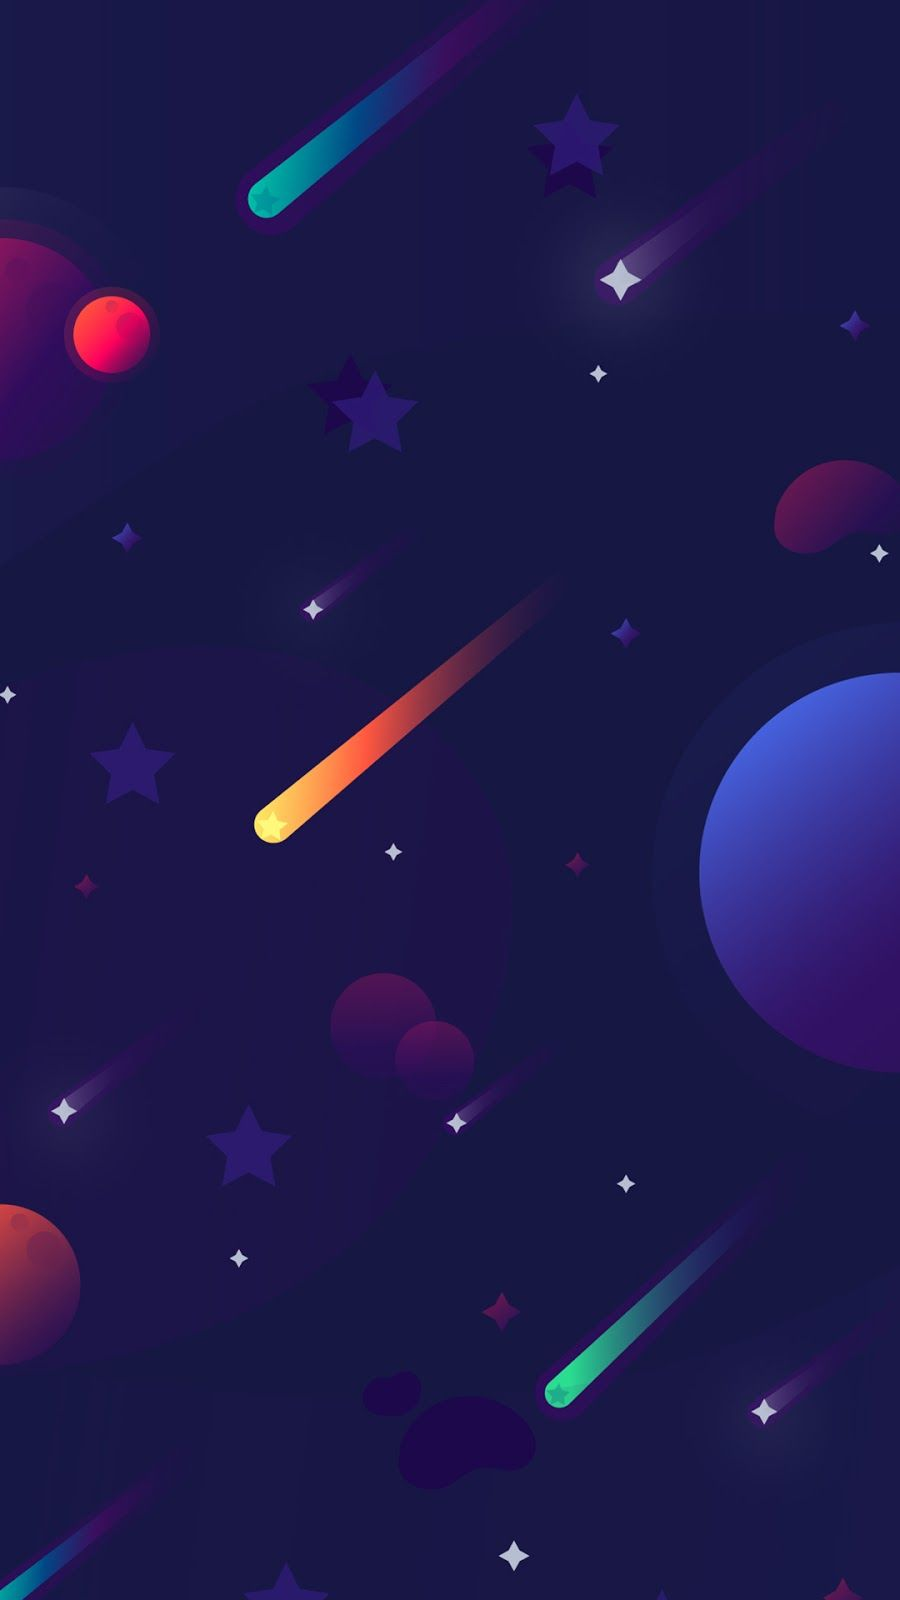 Minimal Space Phone Wallpapers In 2020 Space Phone Wallpaper Wallpaper Phone Wallpaper